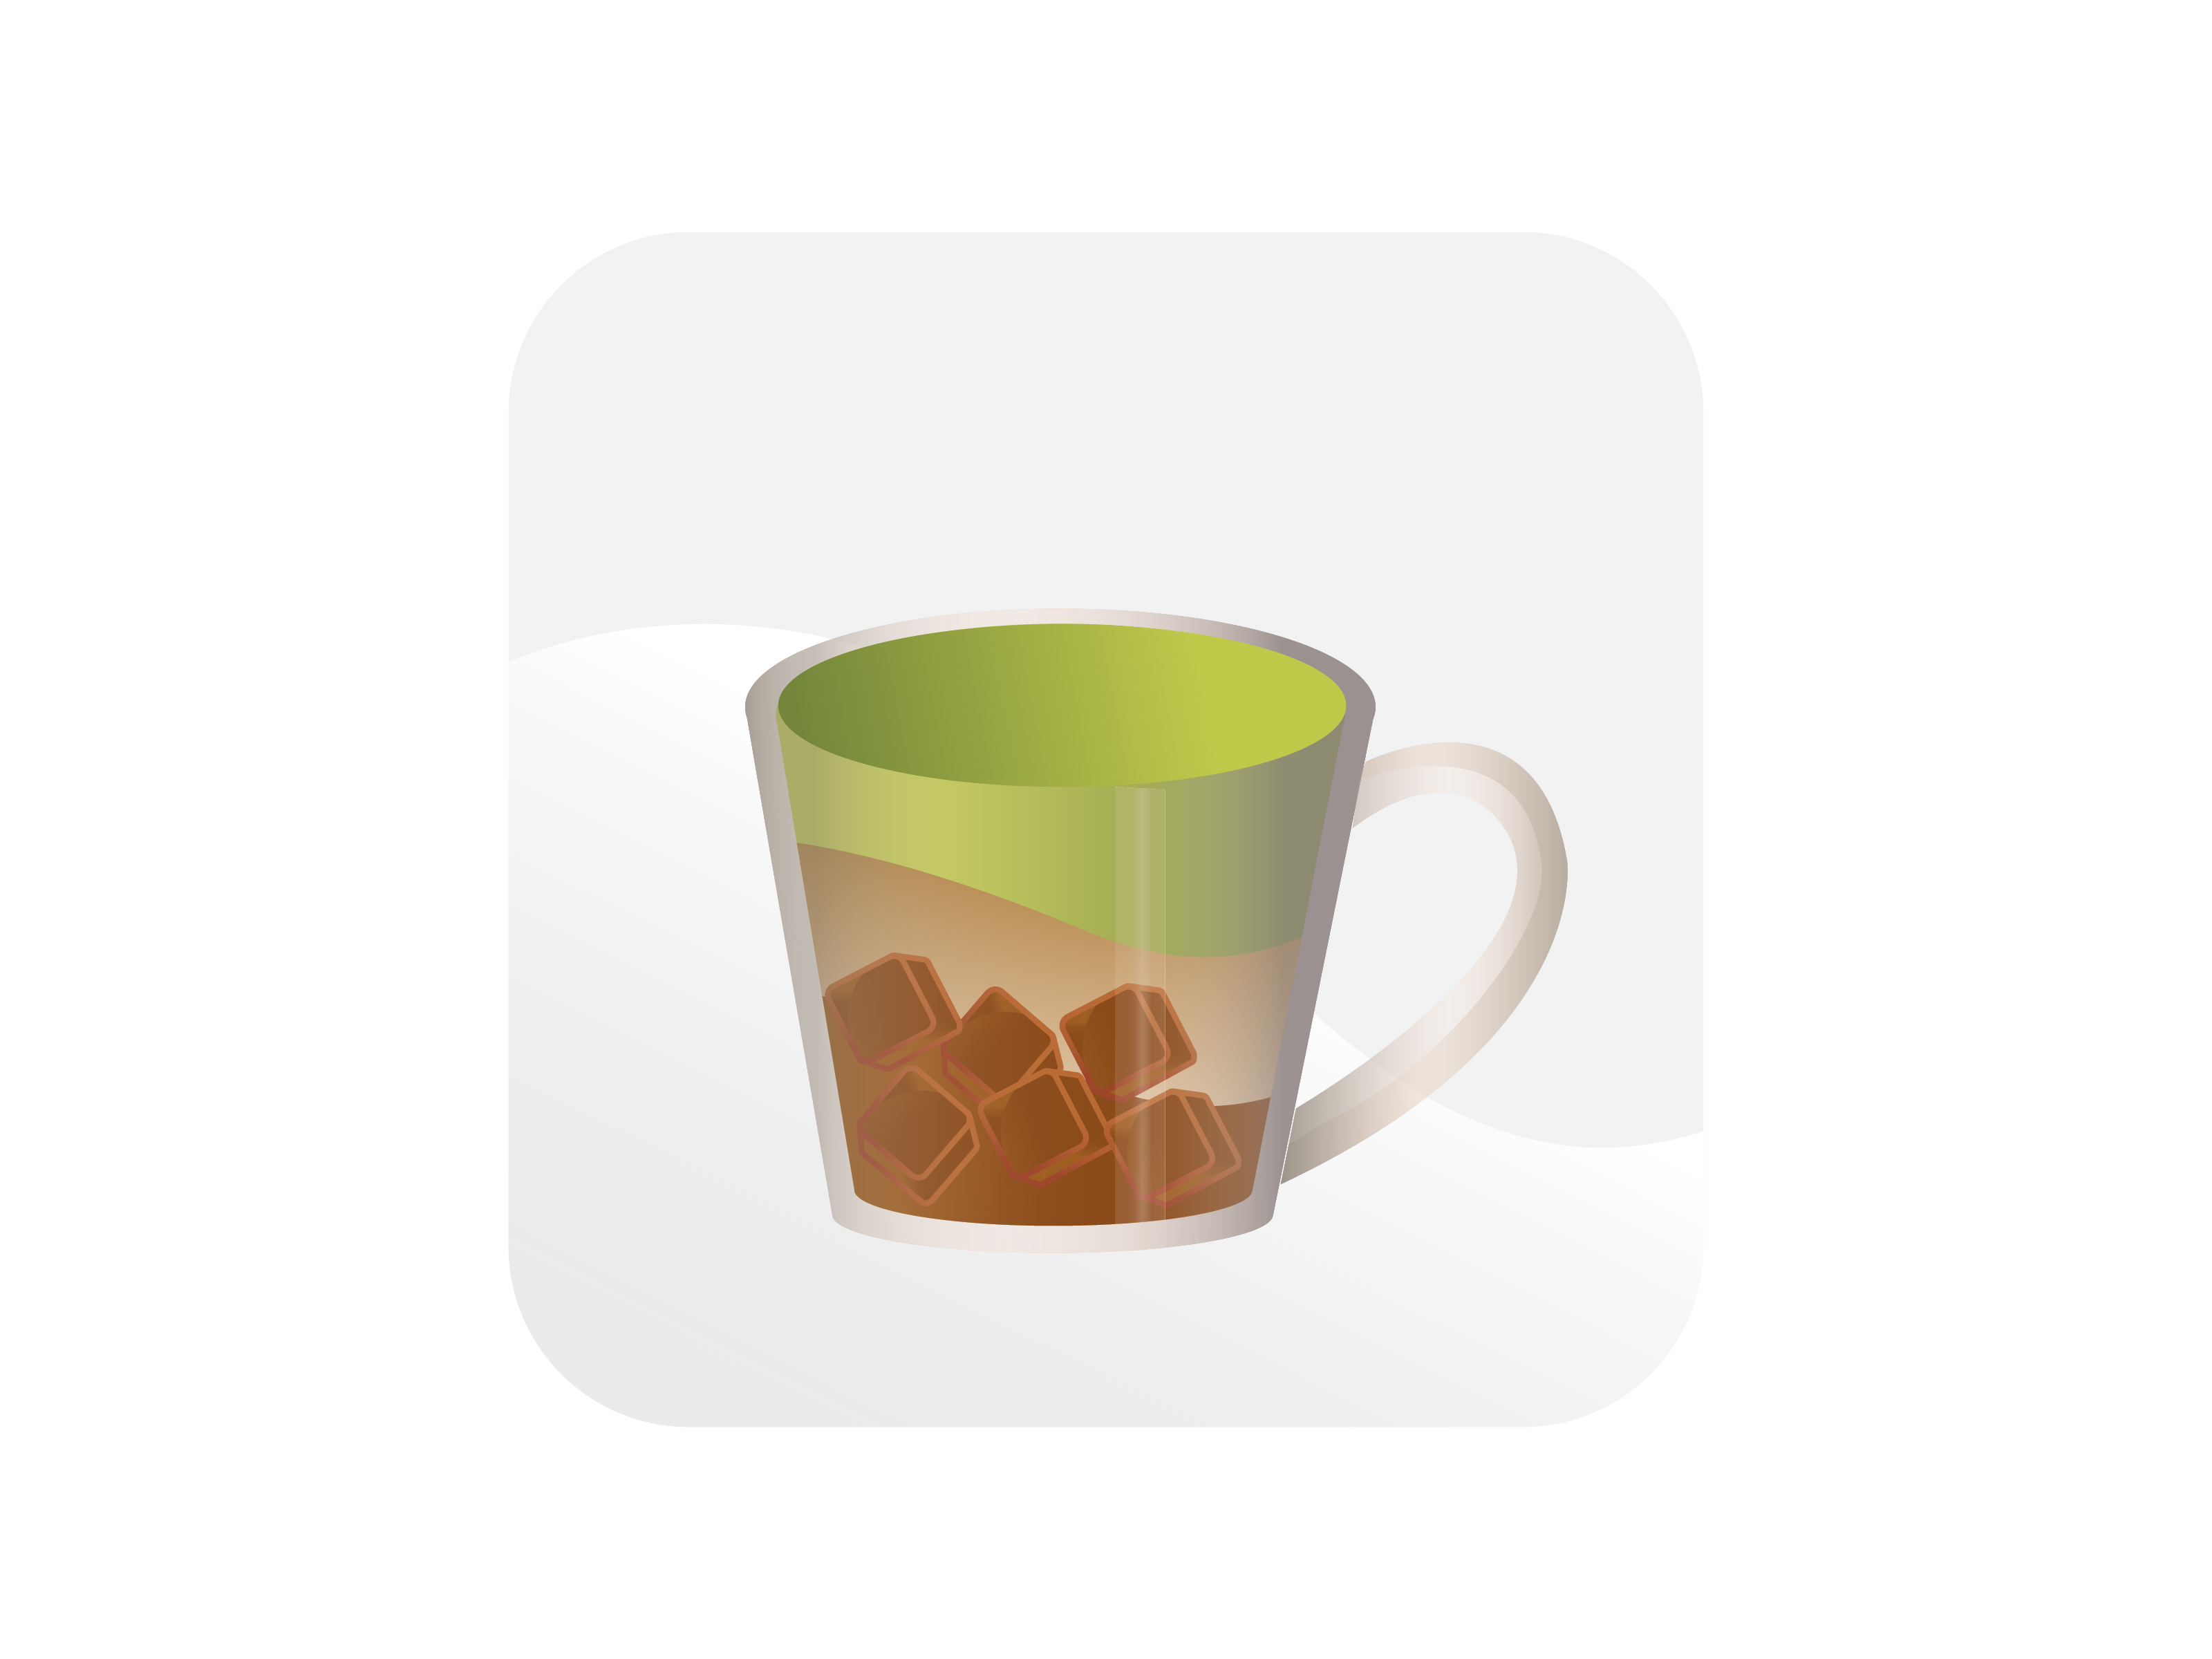 Download Free Matcha Latte Icon Graphic By Samagata Creative Fabrica for Cricut Explore, Silhouette and other cutting machines.